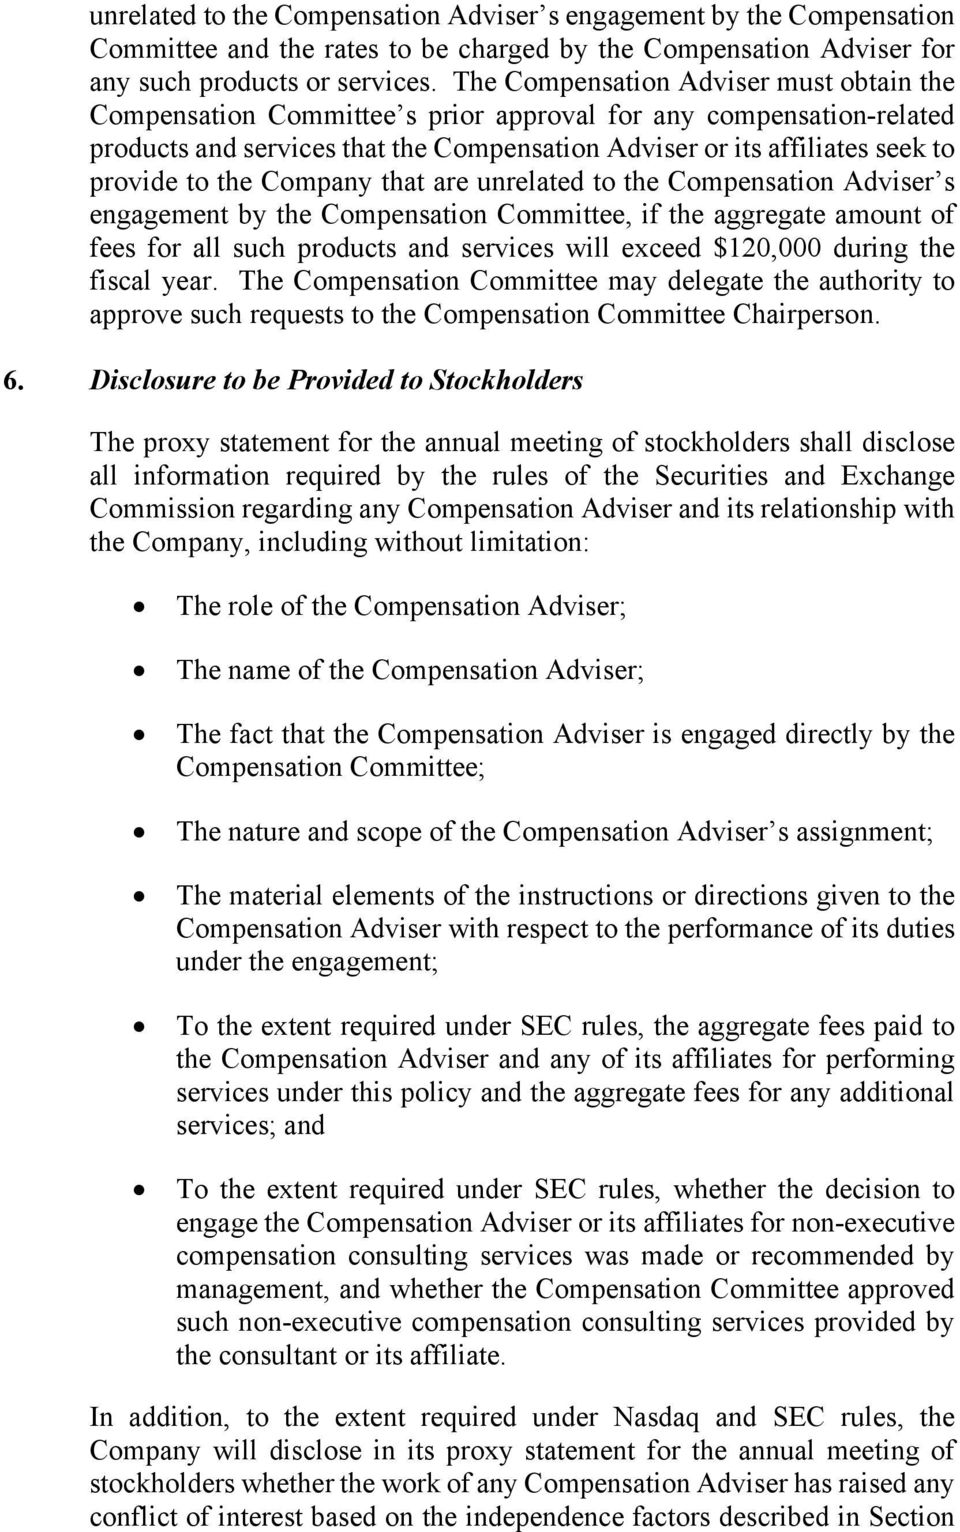 the Company that are unrelated to the Compensation Adviser s engagement by the Compensation Committee, if the aggregate amount of fees for all such products and services will exceed $120,000 during